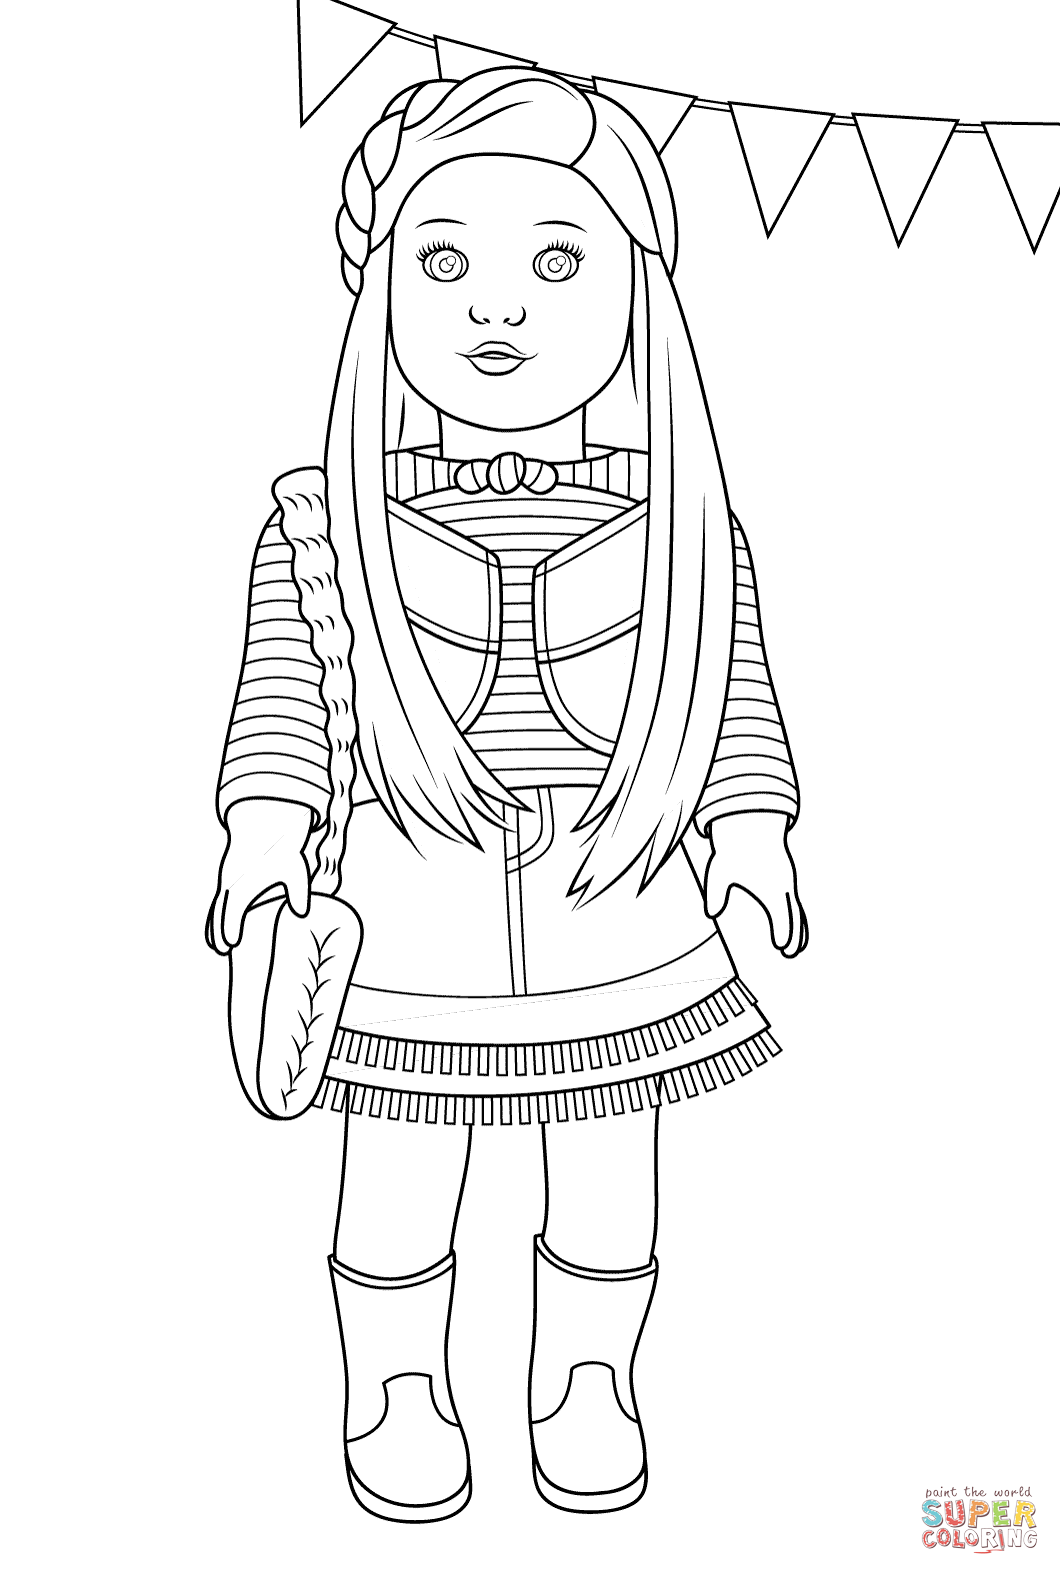 american girl doll coloring pages to print coloring pages american girl doll coloring pages for kids girl doll to print american coloring pages